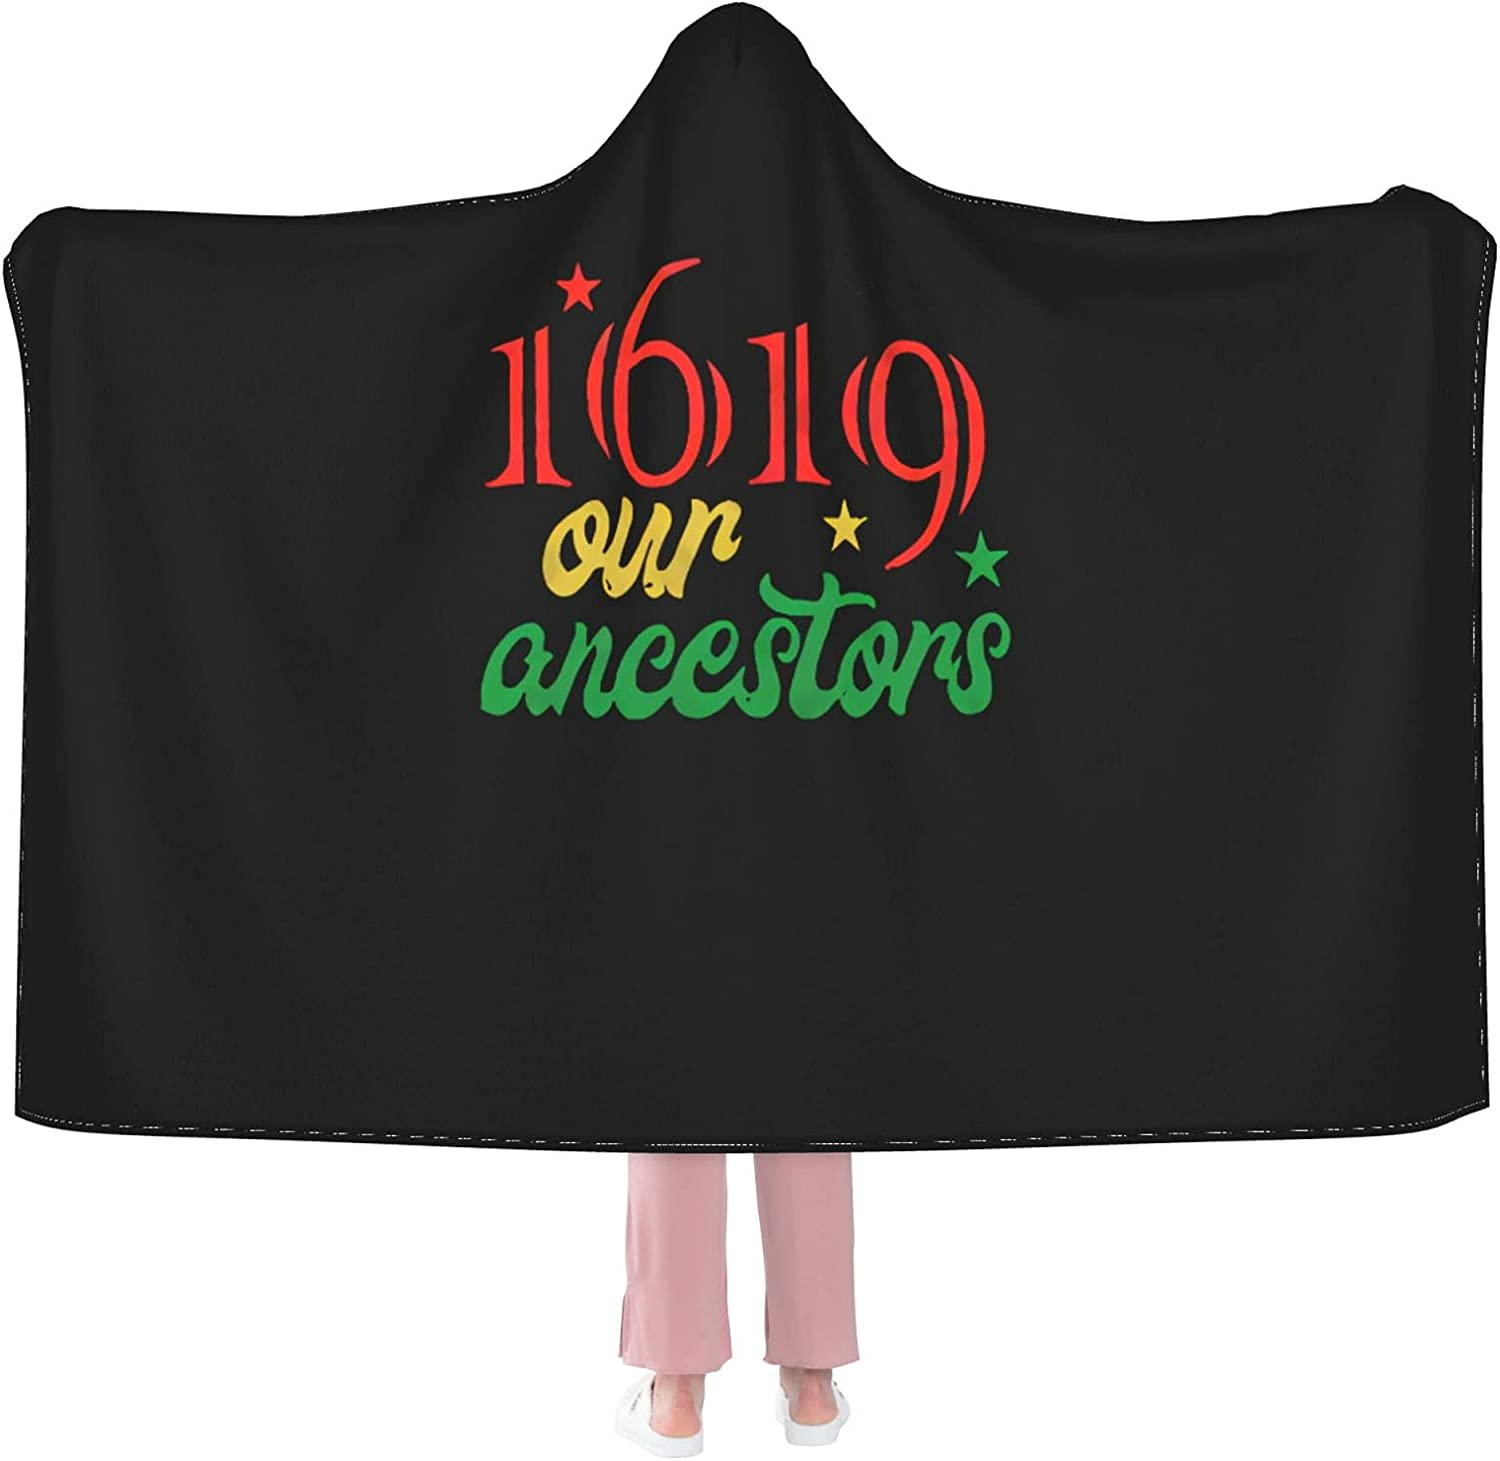 1619 Our Ancestors Direct sale of Award-winning store manufacturer Project Hooded Plush La Blanket Throw